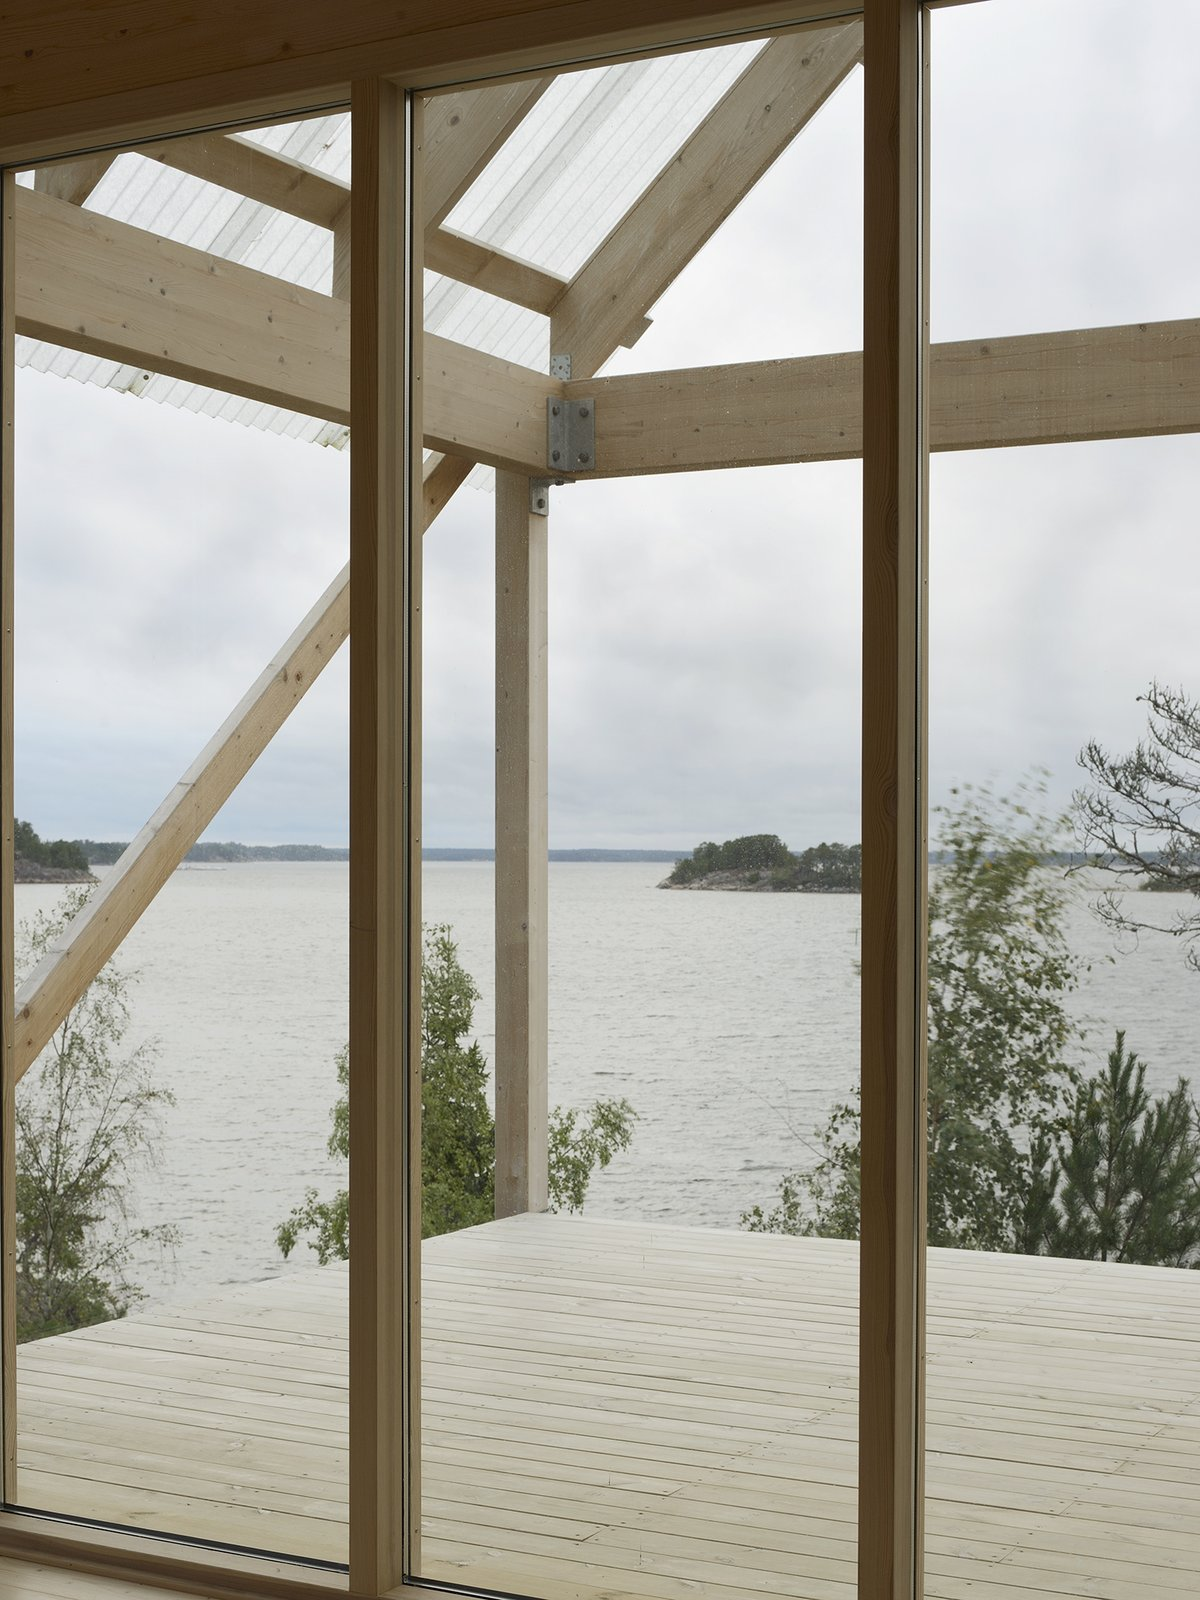 The roof portion made of corrugated fiber-reinforced plastic hangs above deck, which measures roughly 215 square feet and overlooks views of the water.  Photo 3 of 7 in A Swedish Summer Cabin That Sits  Above and Among the Trees